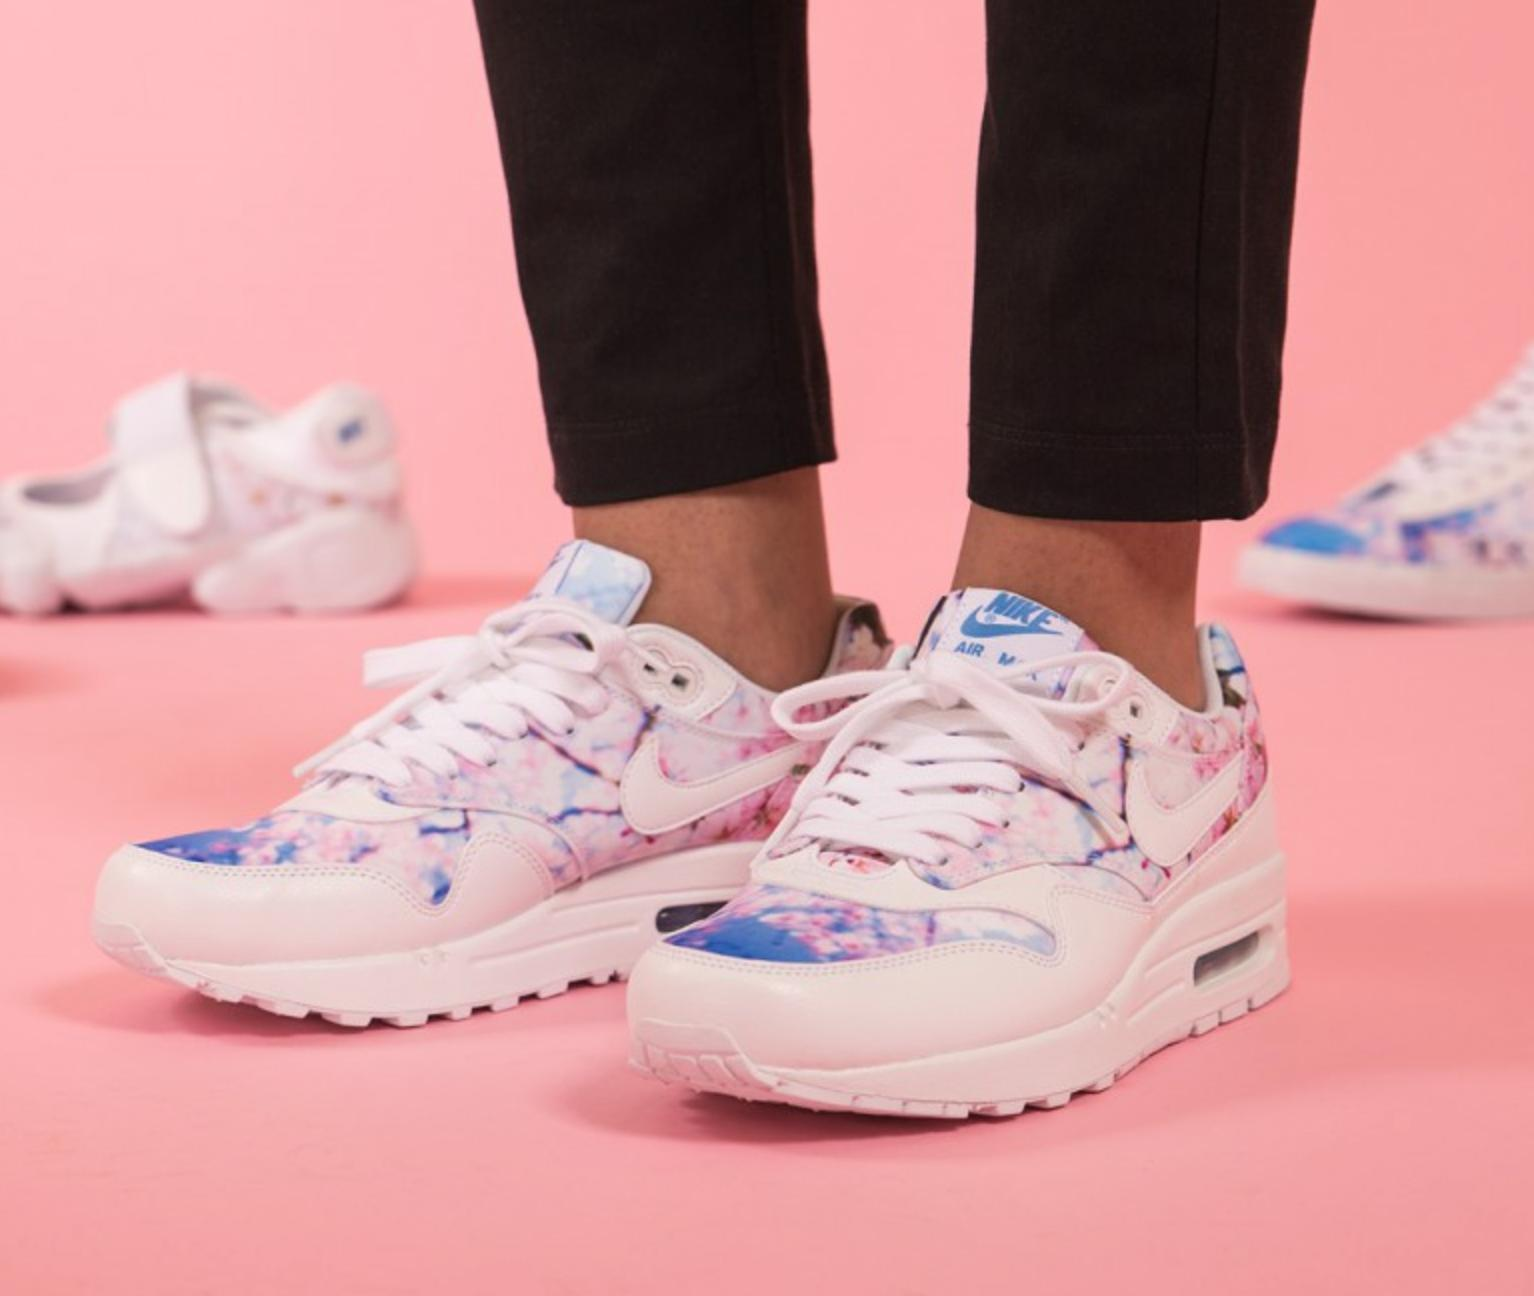 From $65 NIKE WOMEN'S CHERRY BLOSSOM SNEAKERS @ Nordstrom